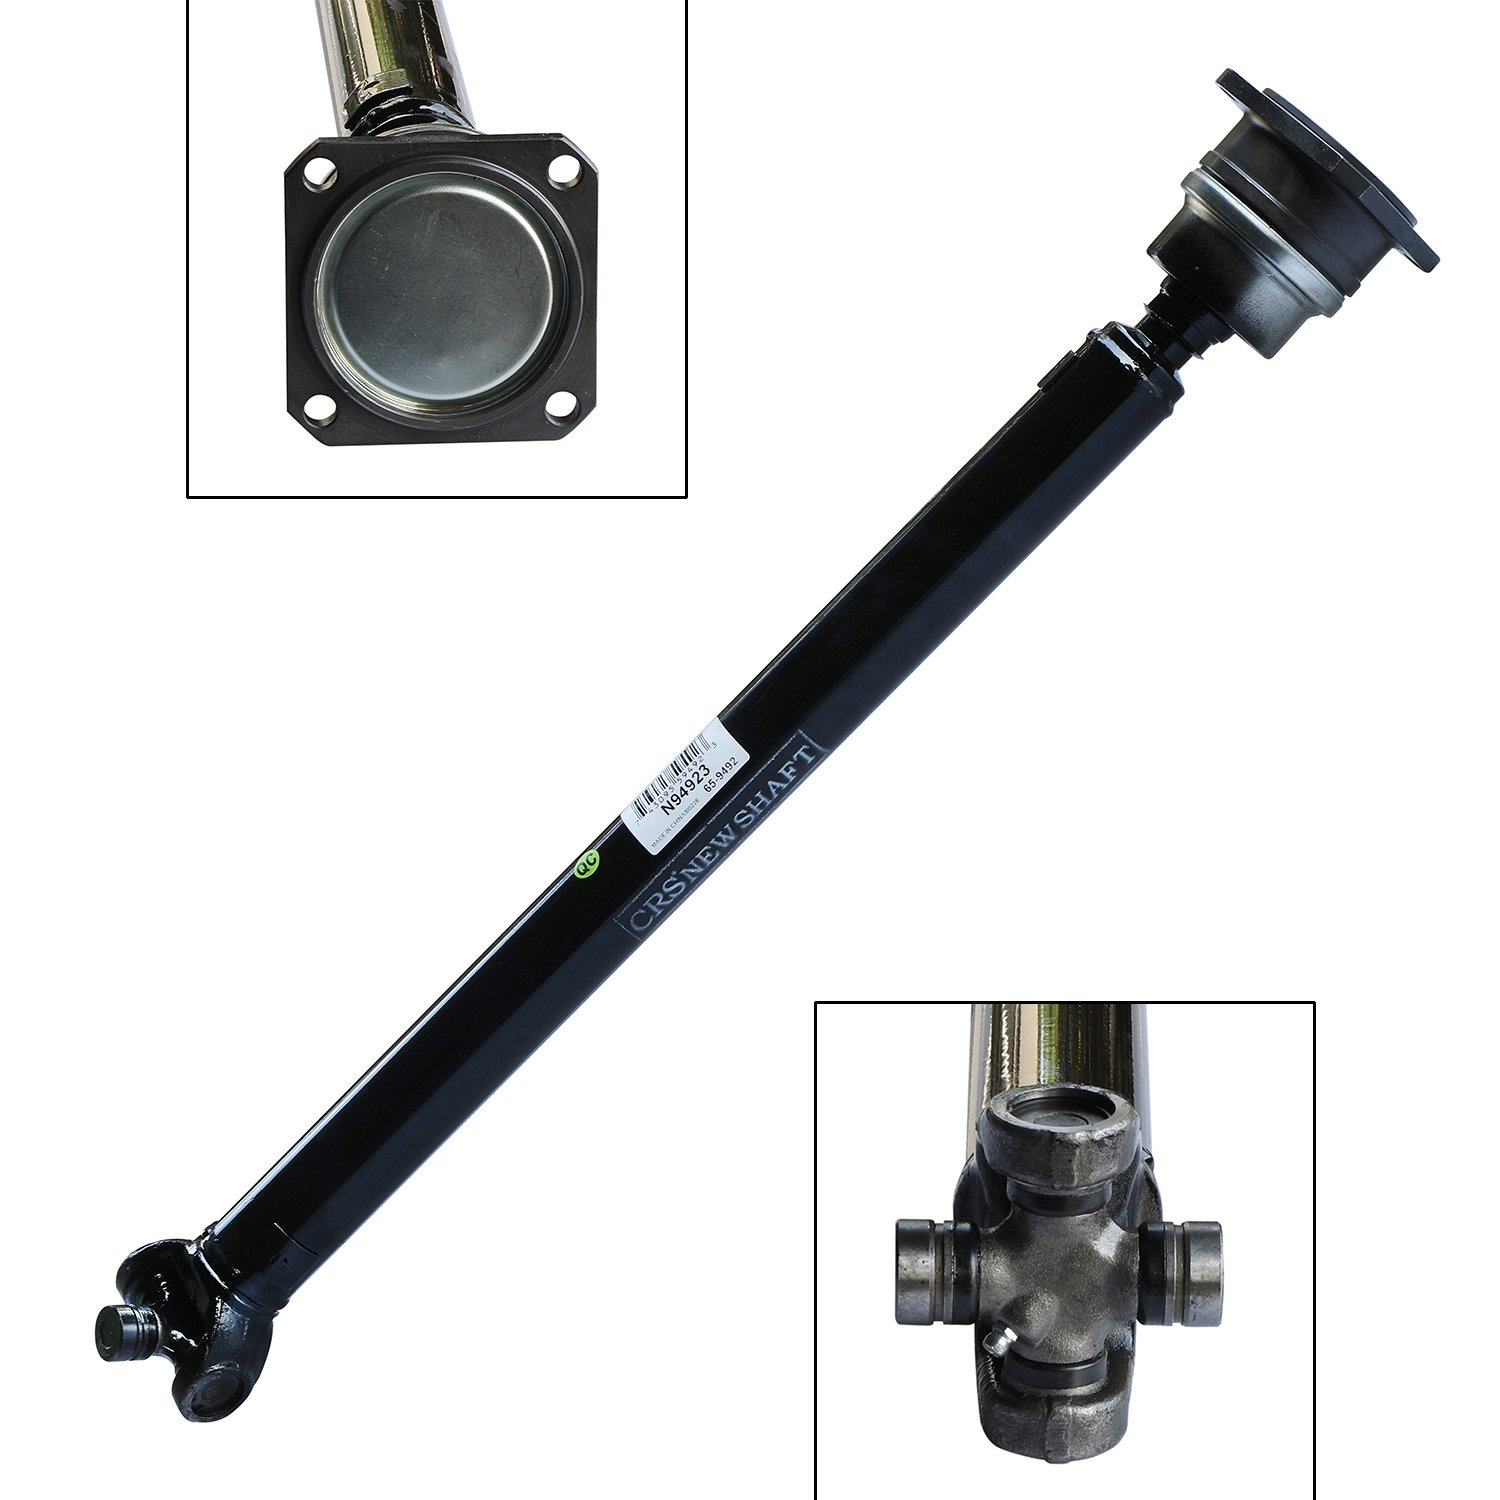 CRS N94923 New Prop shaft/Drive Shaft Assembly, Front, for 2006-2010 Hummer Truck H3/ H3T, about 23 5/8'' long